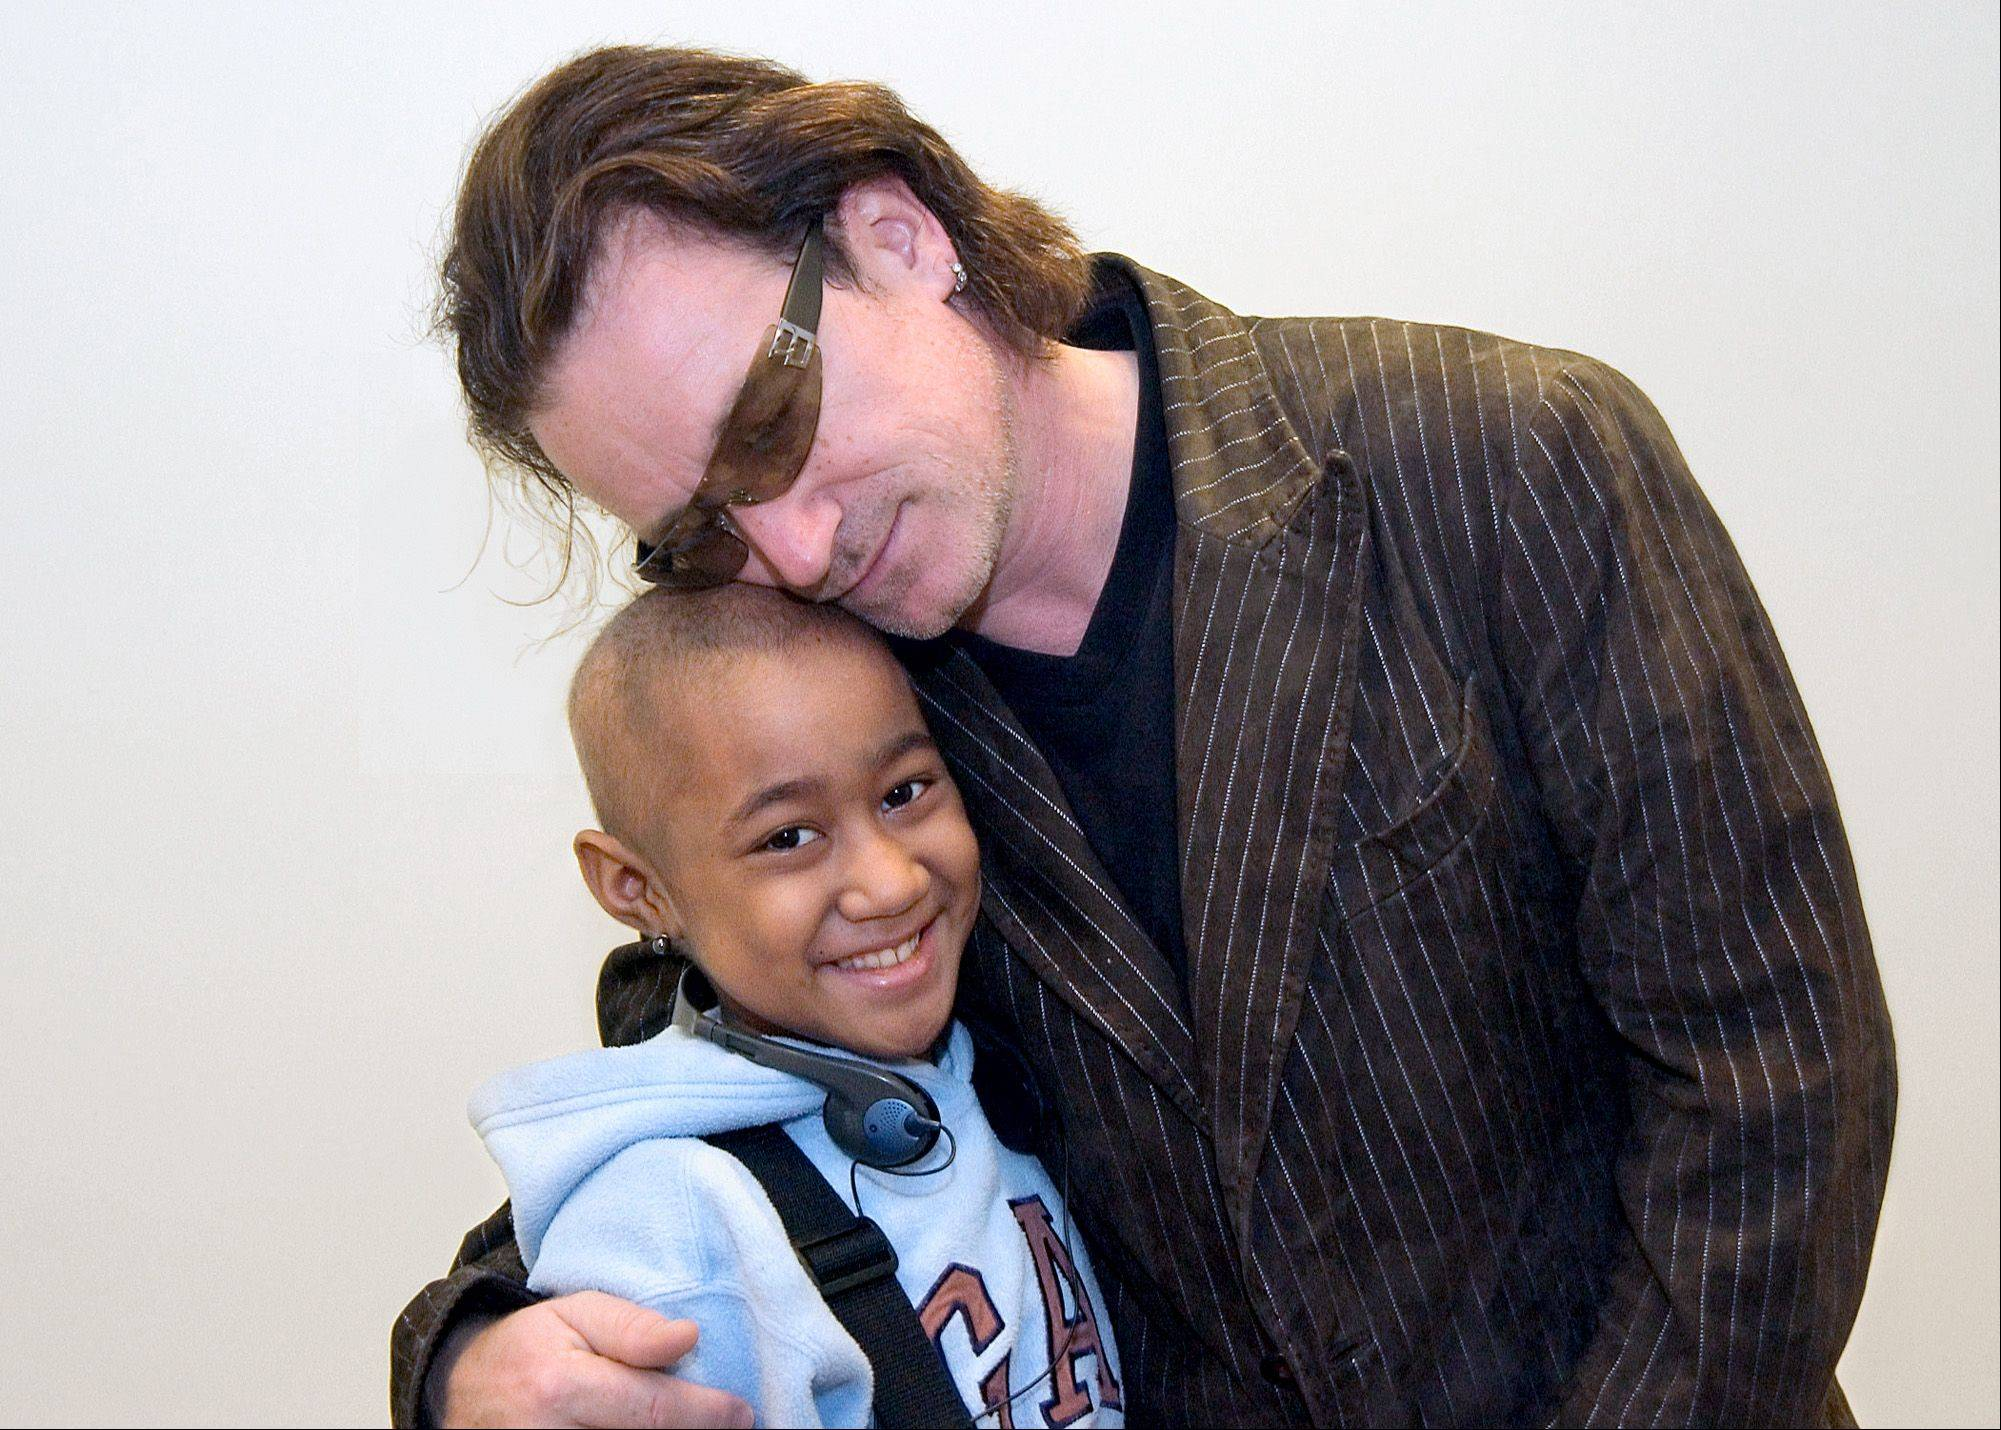 Bono, frontman for U2, greets Luseane Pese, a 10 year-old leukemia patient from Hawaii, at St. Jude Children's Research Hospital Tuesday, Oct. 19, 2004, in Memphis Tenn. Bono was in Tennessee to receive the National Civil Rights Museum's International Freedom Award. The singer/activist, known for his support to increase awareness of the AIDS crisis facing Africa, met with St. Jude researchers who are at work to develop an HIV vaccine.